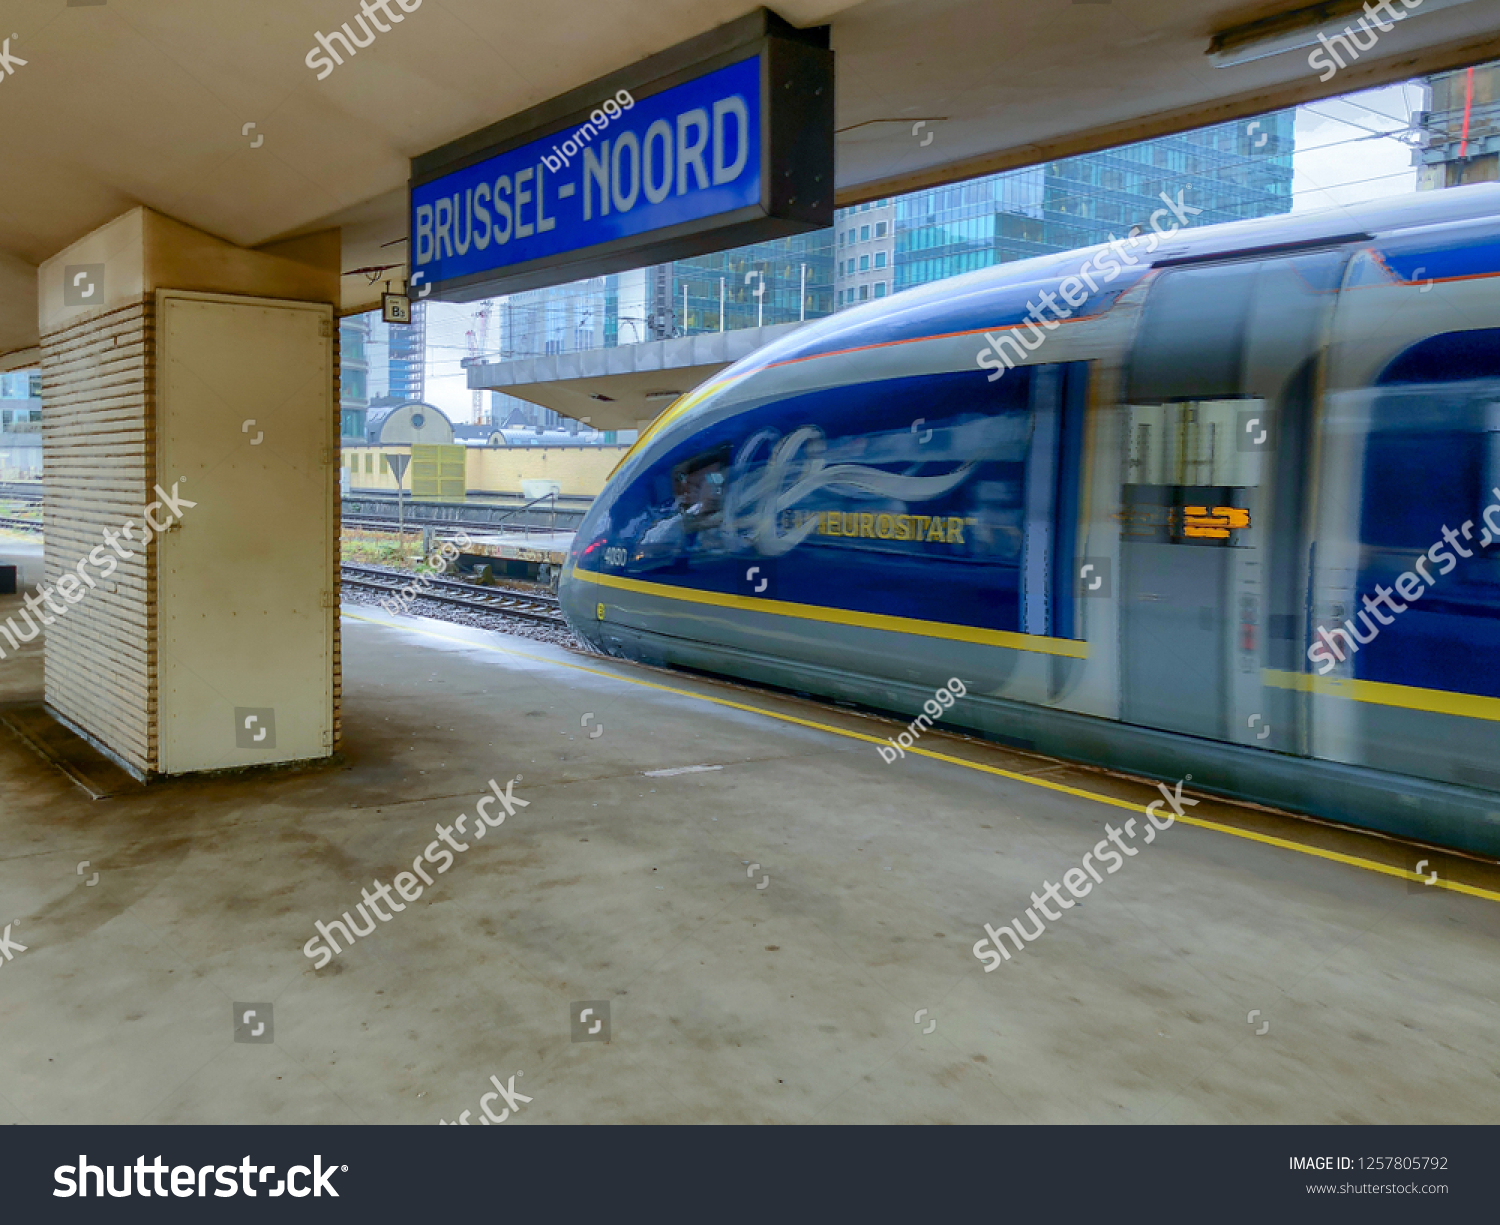 Brussels, Belgium - October 30, 2018: The E320 Eurostar International High Speed passengers Train waiting in the Brussels North railway station